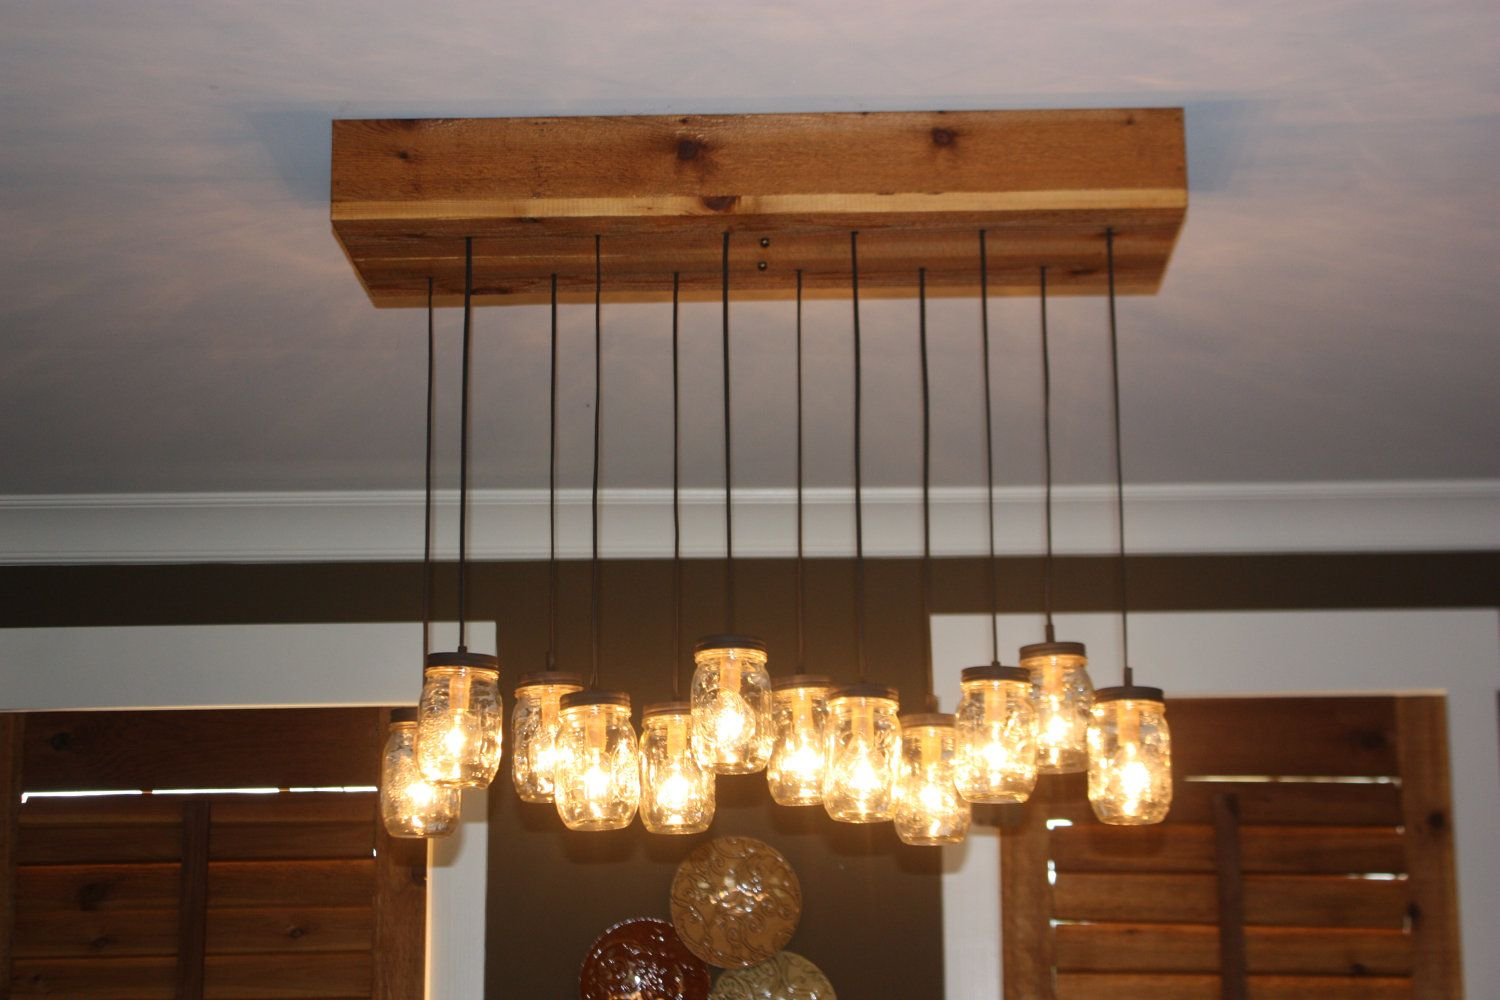 Mason jar chandelier with cedar base 30000 via etsy like this mason jar chandelier with cedar base 30000 via etsy like this look aloadofball Gallery